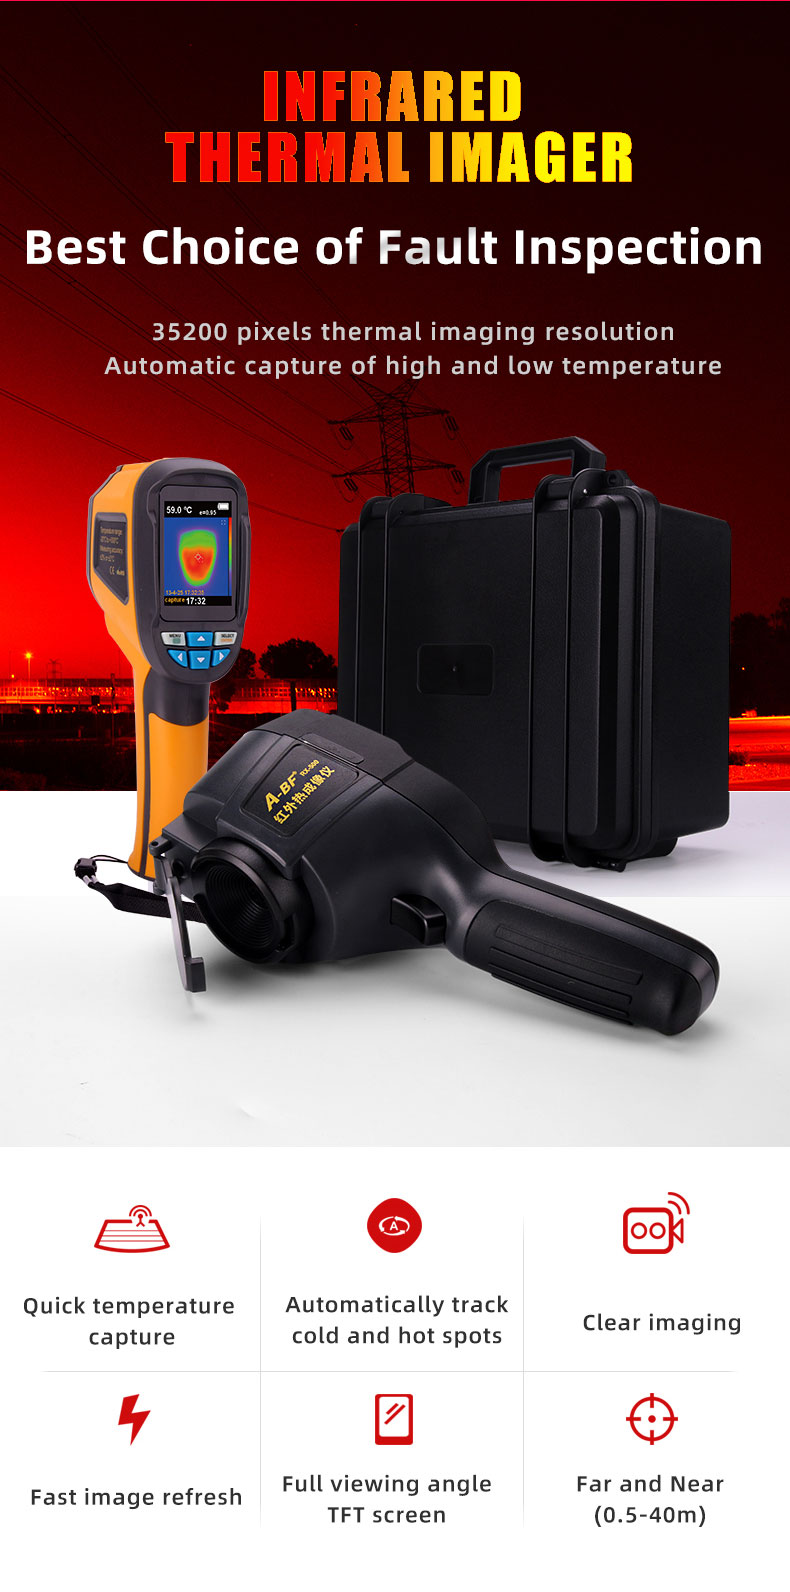 Digital Thermal Camera With A USB Cable Connected To Display For Temperature Measuring 12